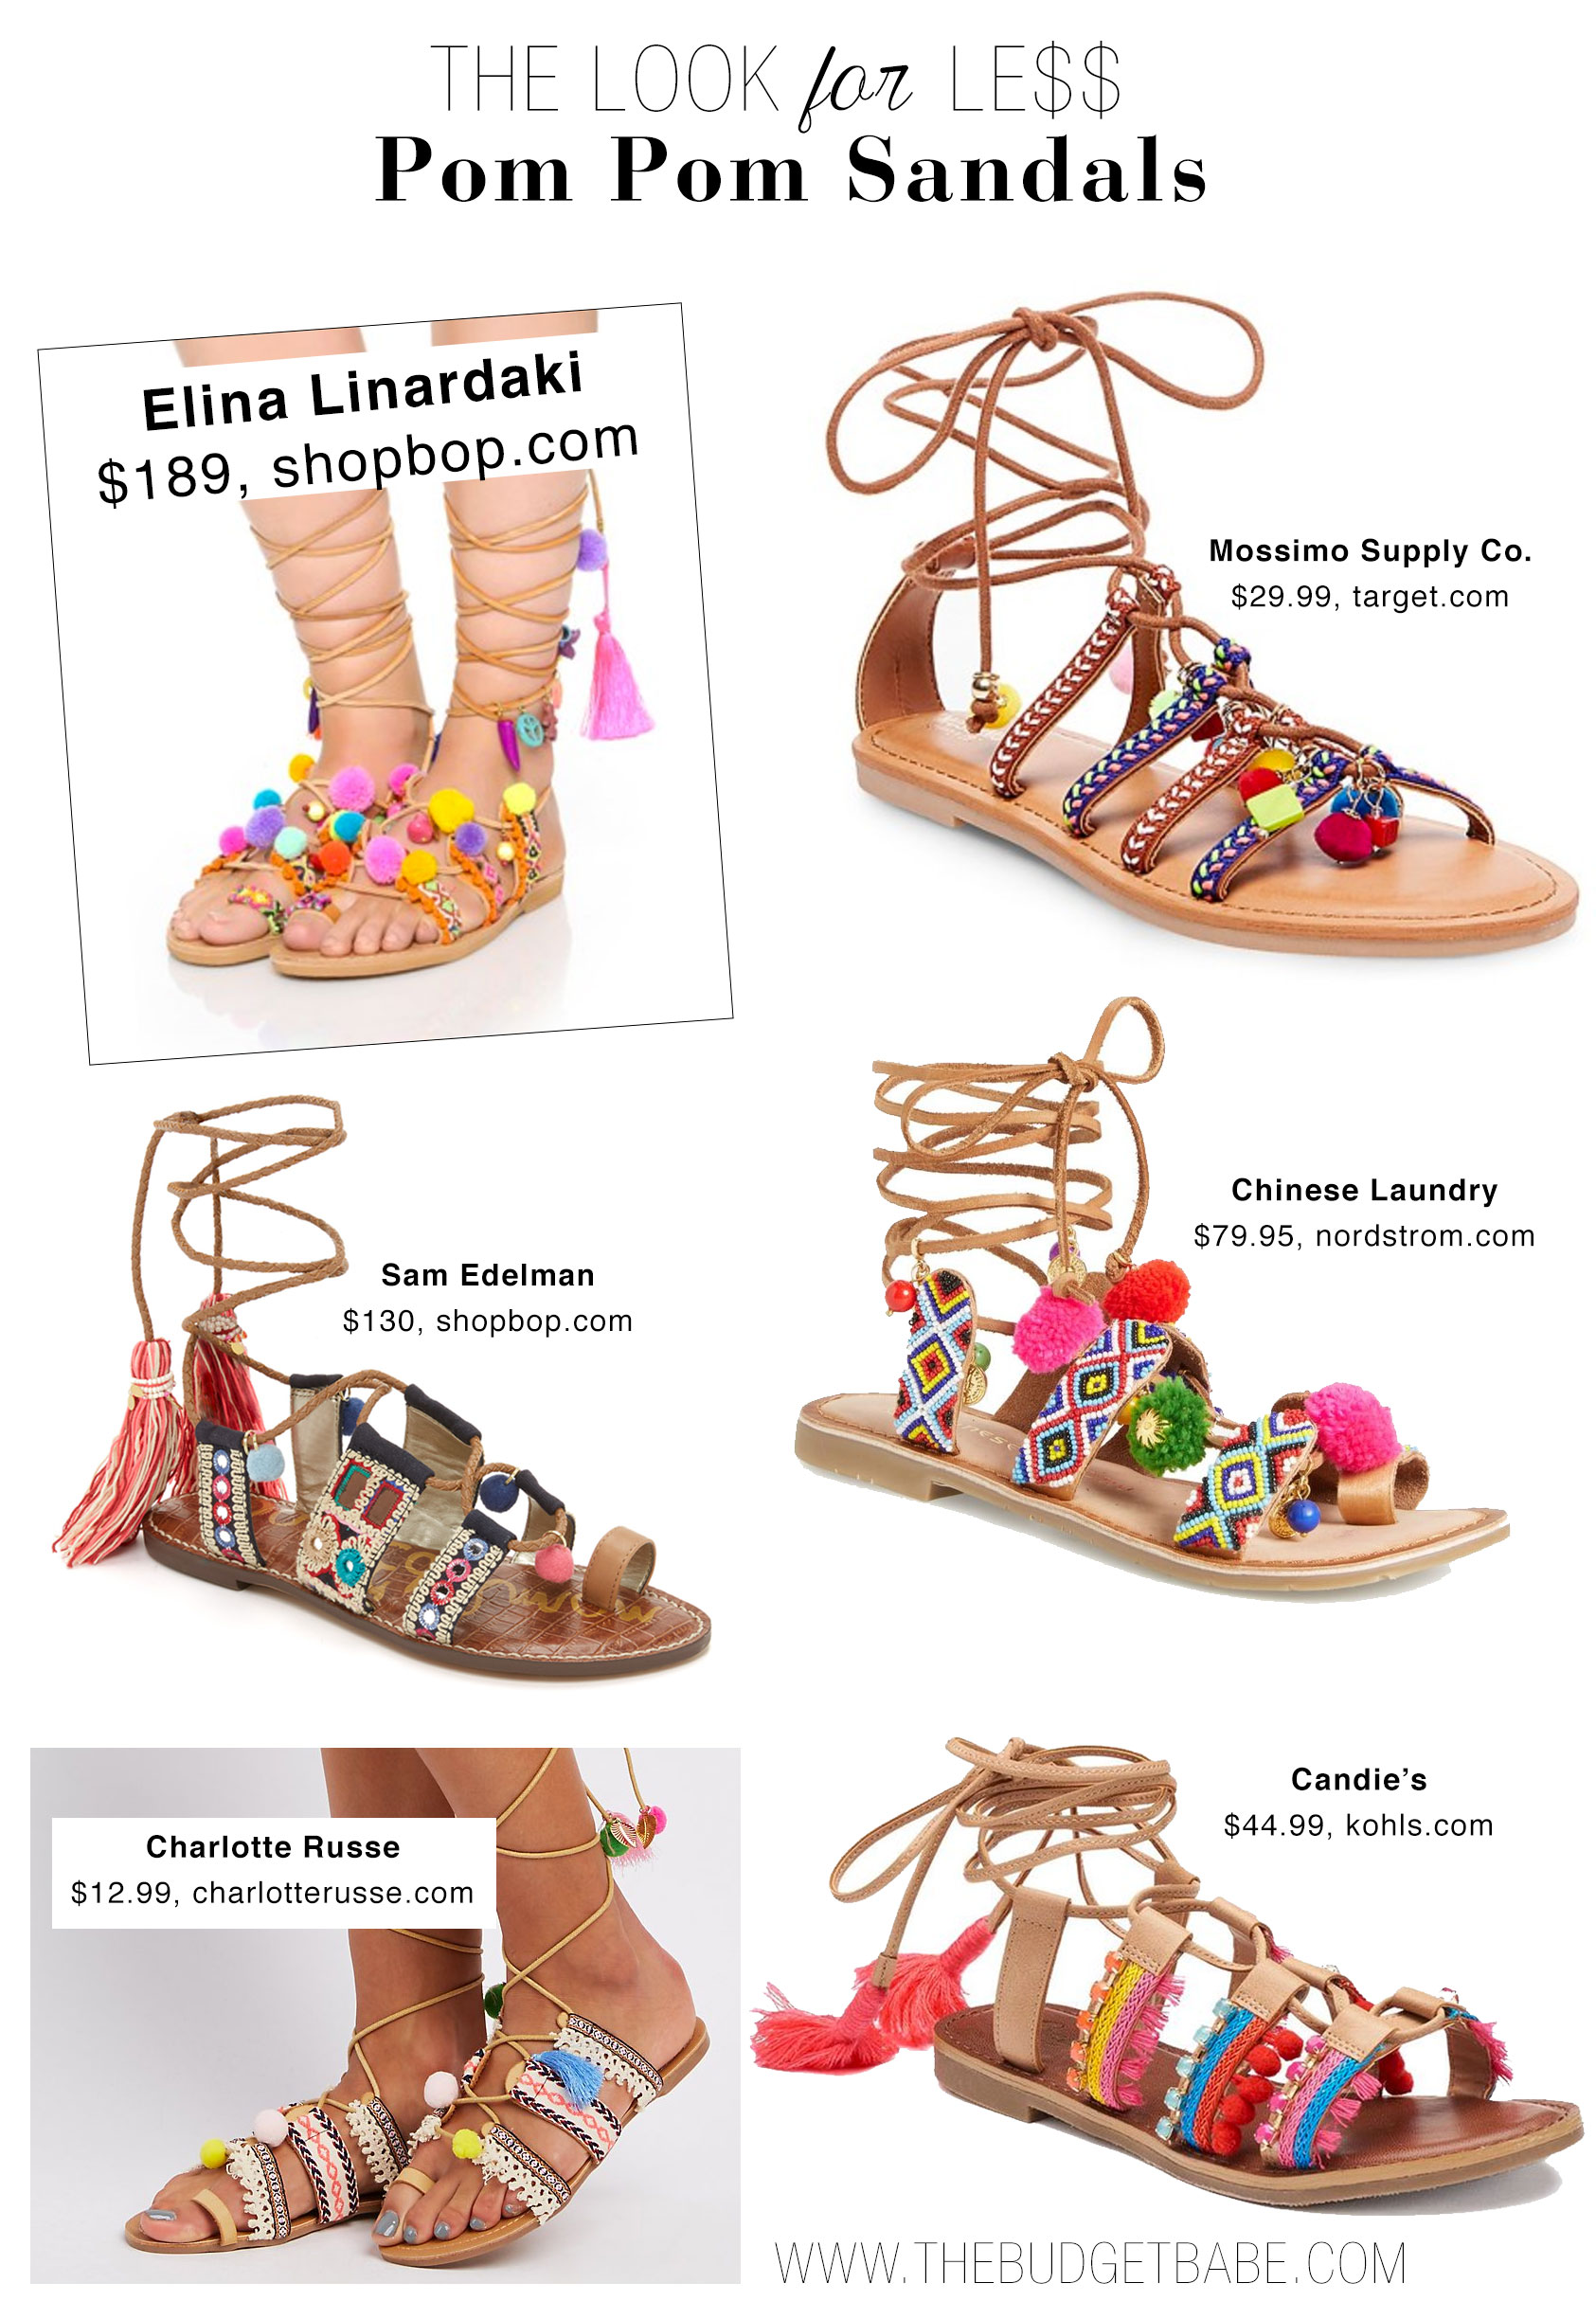 e73540de30f The Look for Less  Pom Pom Sandals - The Budget Babe